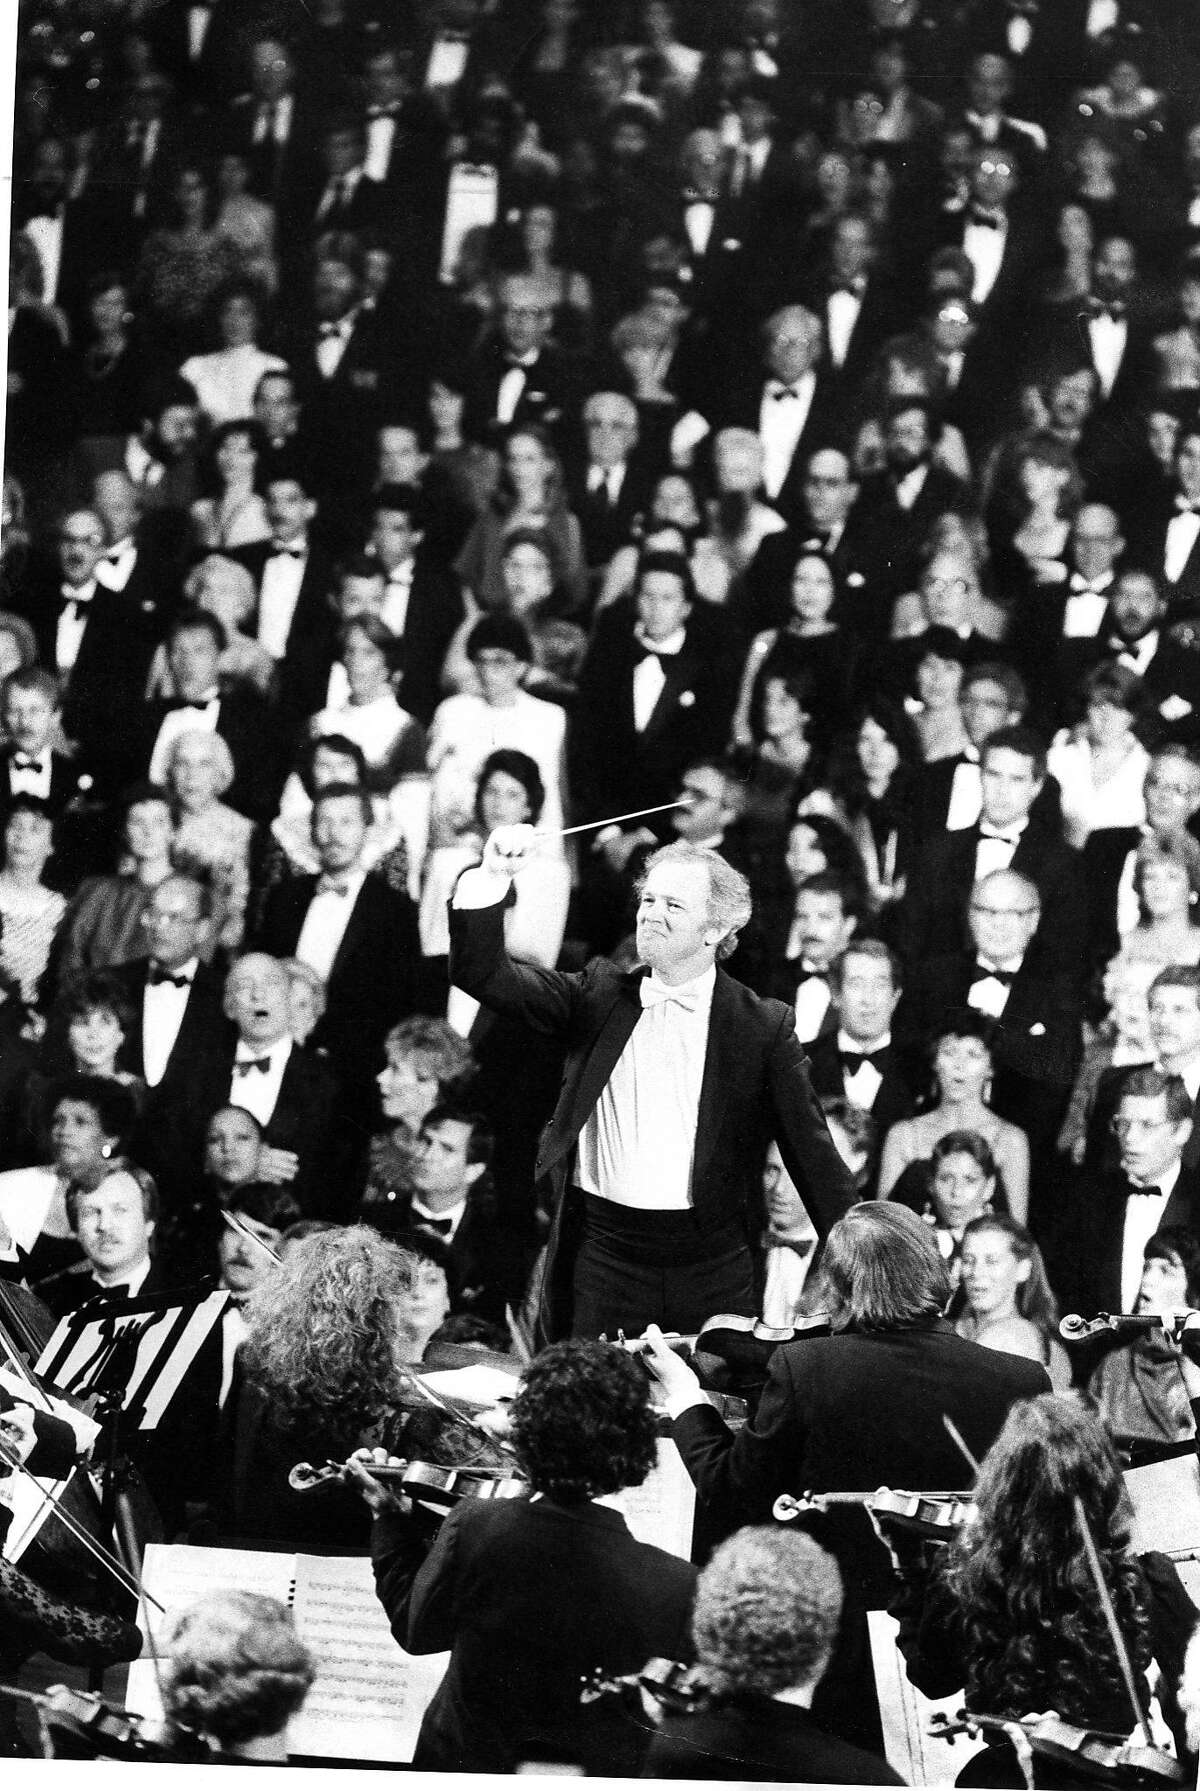 San Francisco Symphony conducted by Edo De Waart conducts National Anthem during opening 09/07/1983.